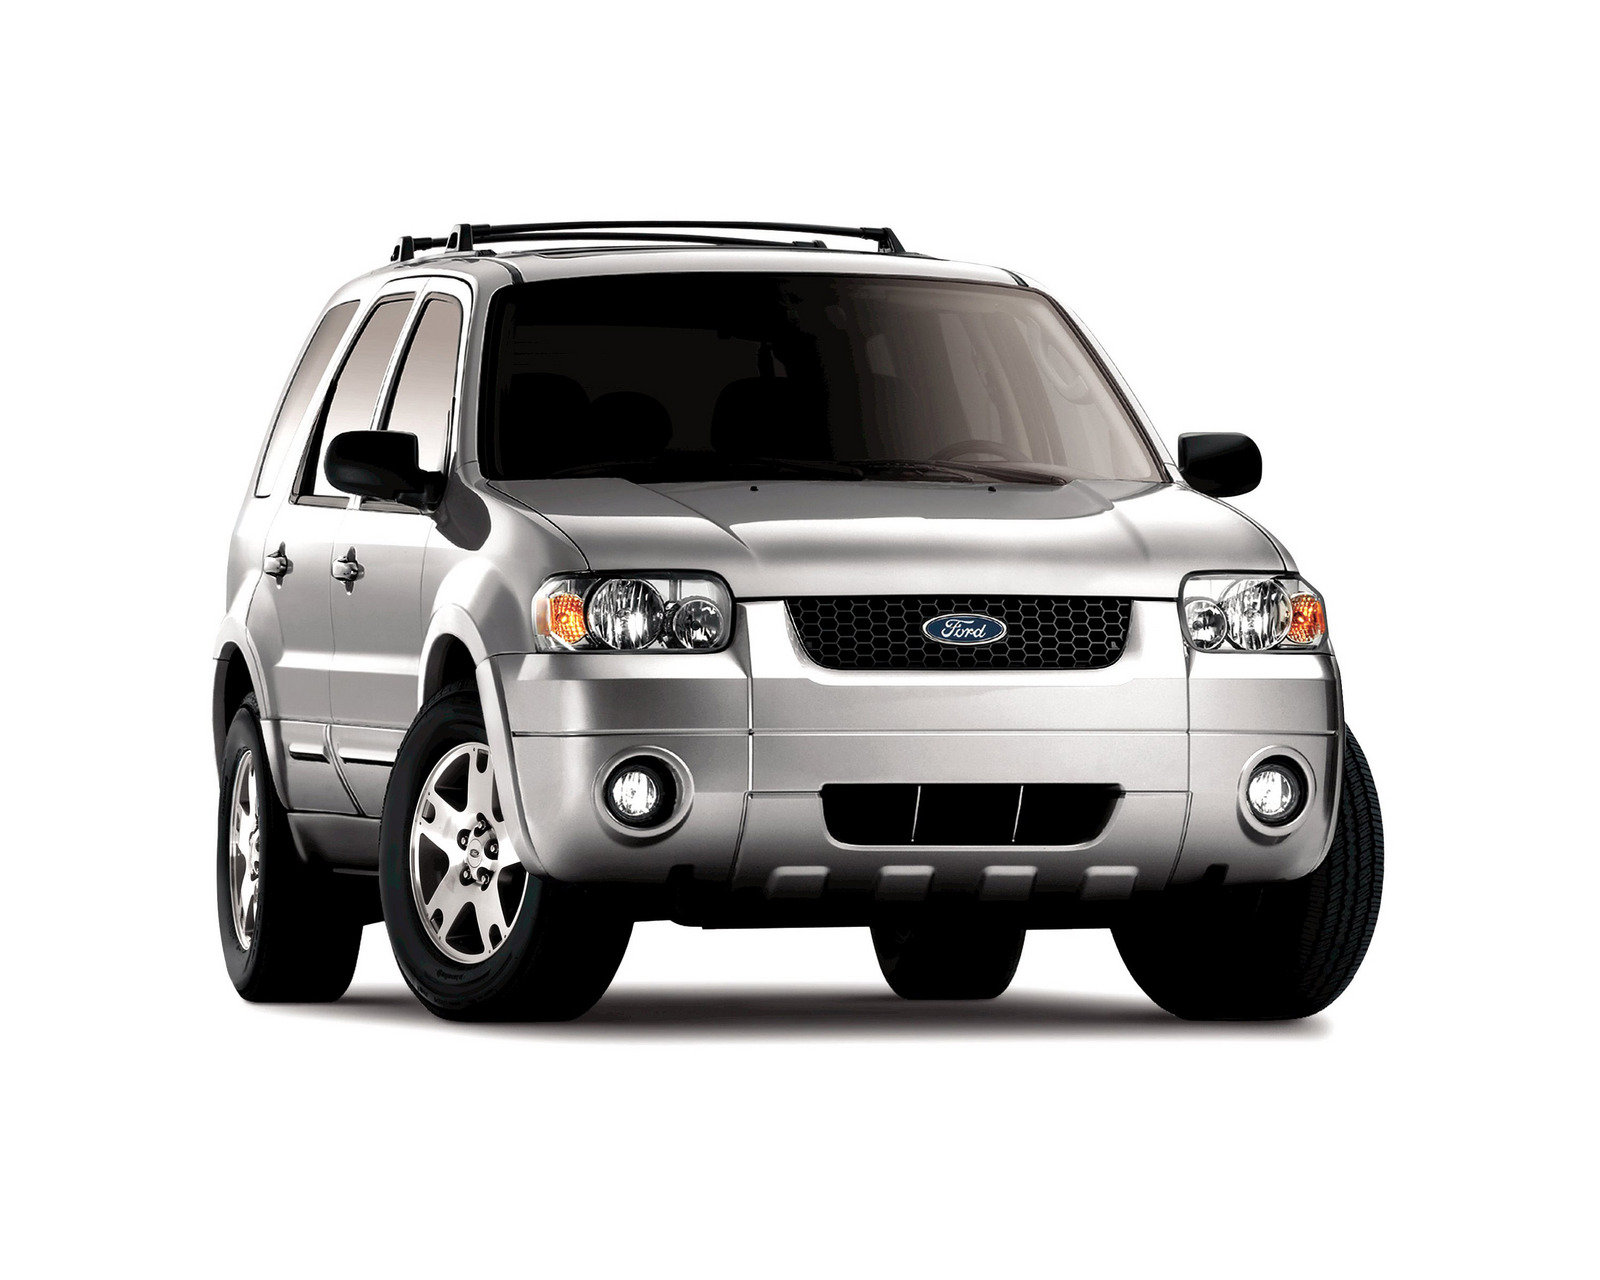 2006 ford escape picture 43893 car review top speed. Black Bedroom Furniture Sets. Home Design Ideas